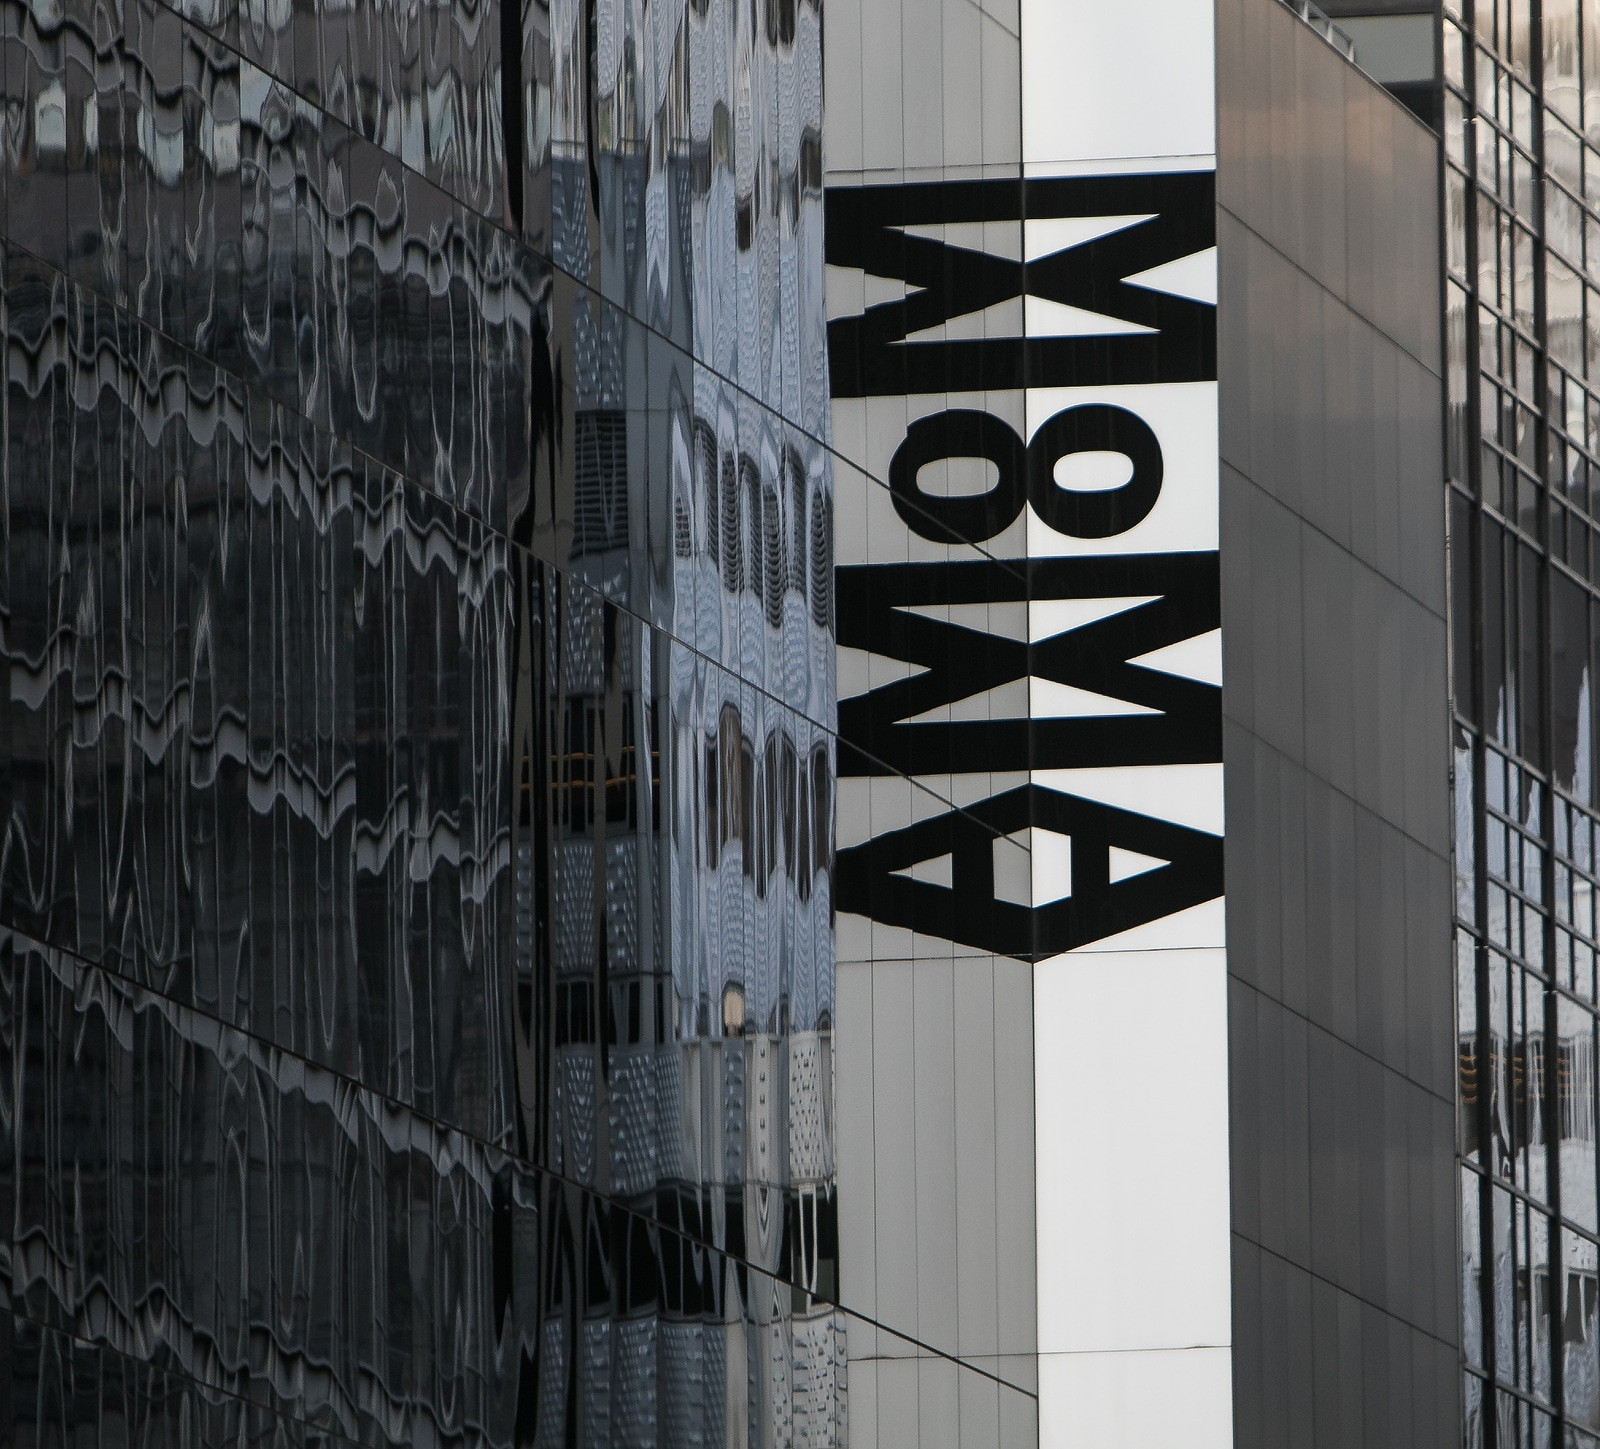 Museum of Modern Art's in New York by Booking Express Travel